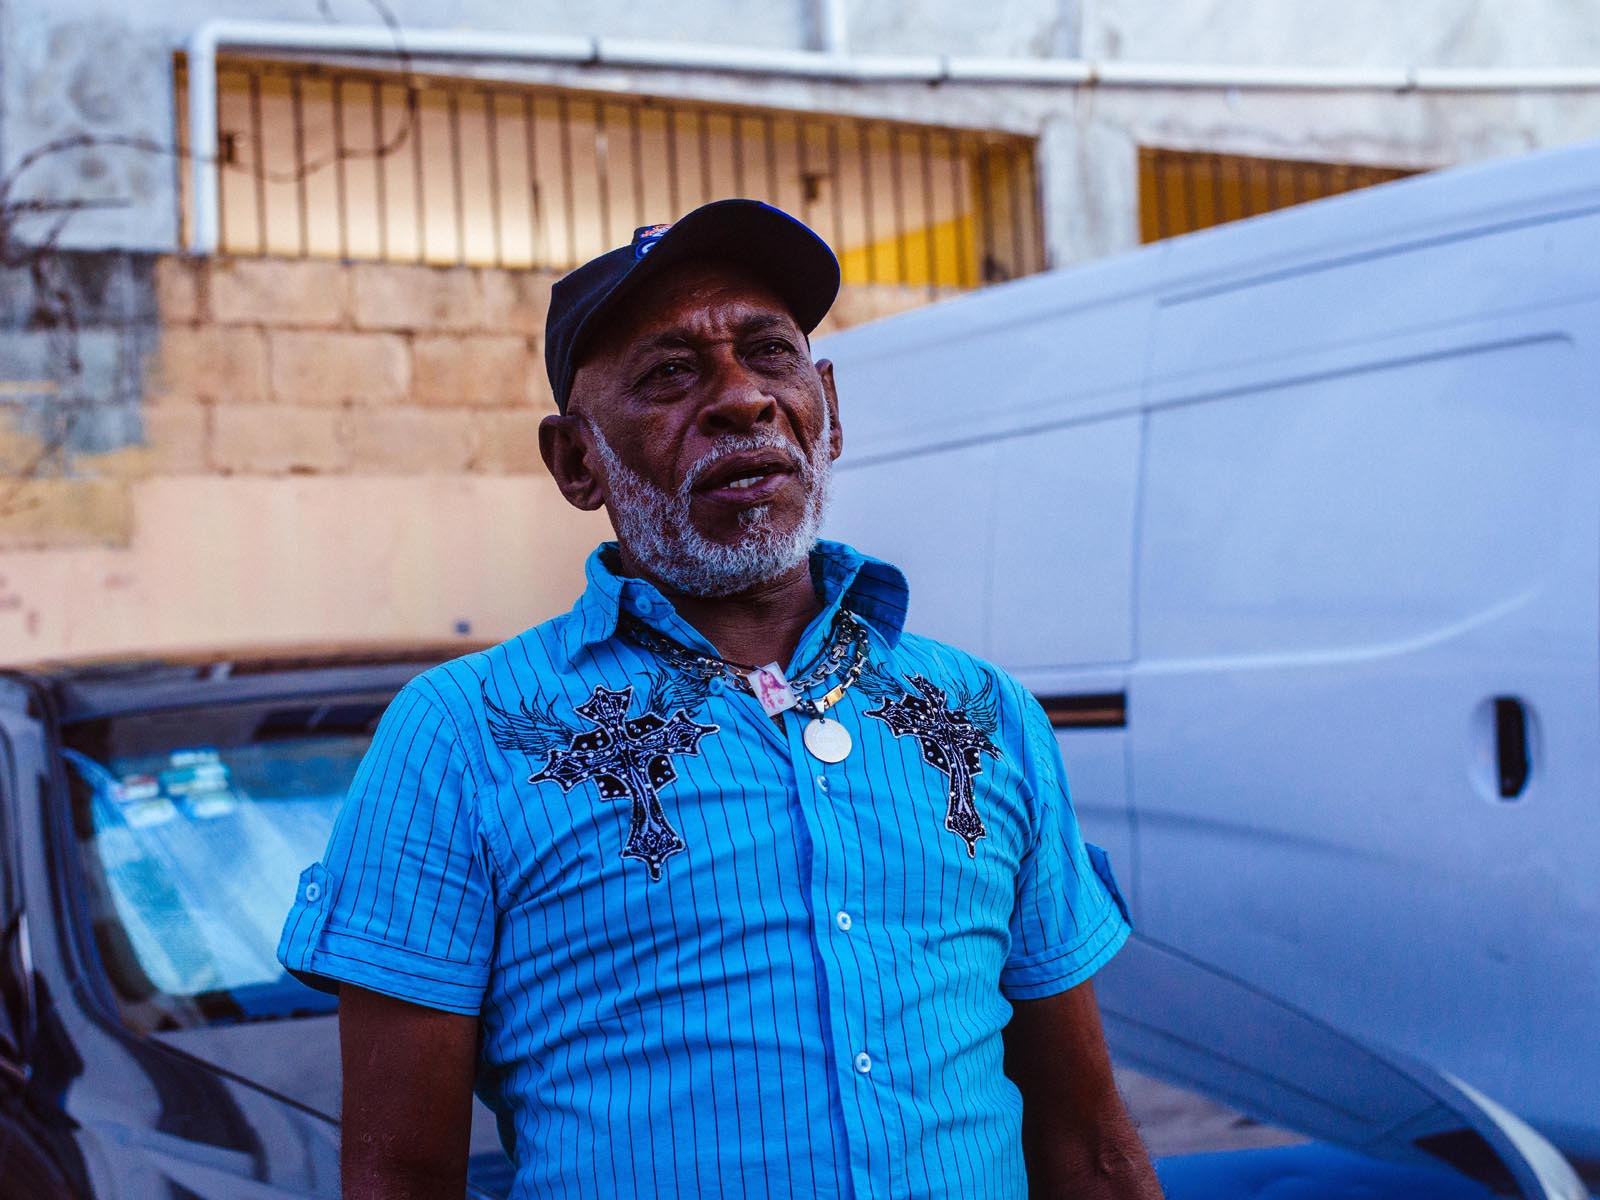 joris-hermans-street-photography-santo-domingo-man.jpg